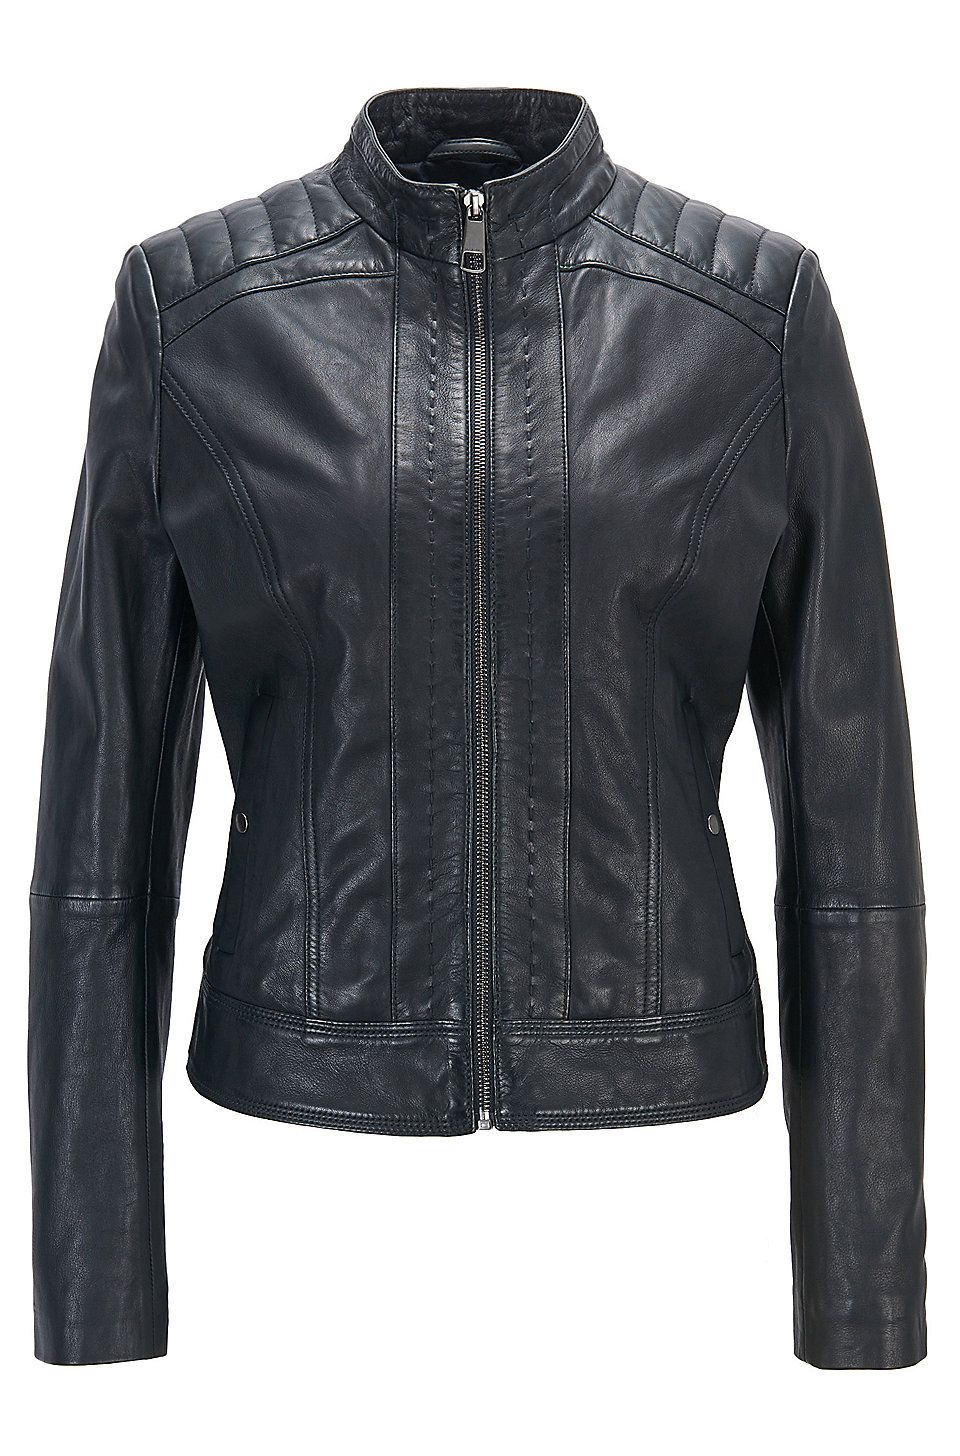 Lightweight slimfit leather jacket with contrast lining